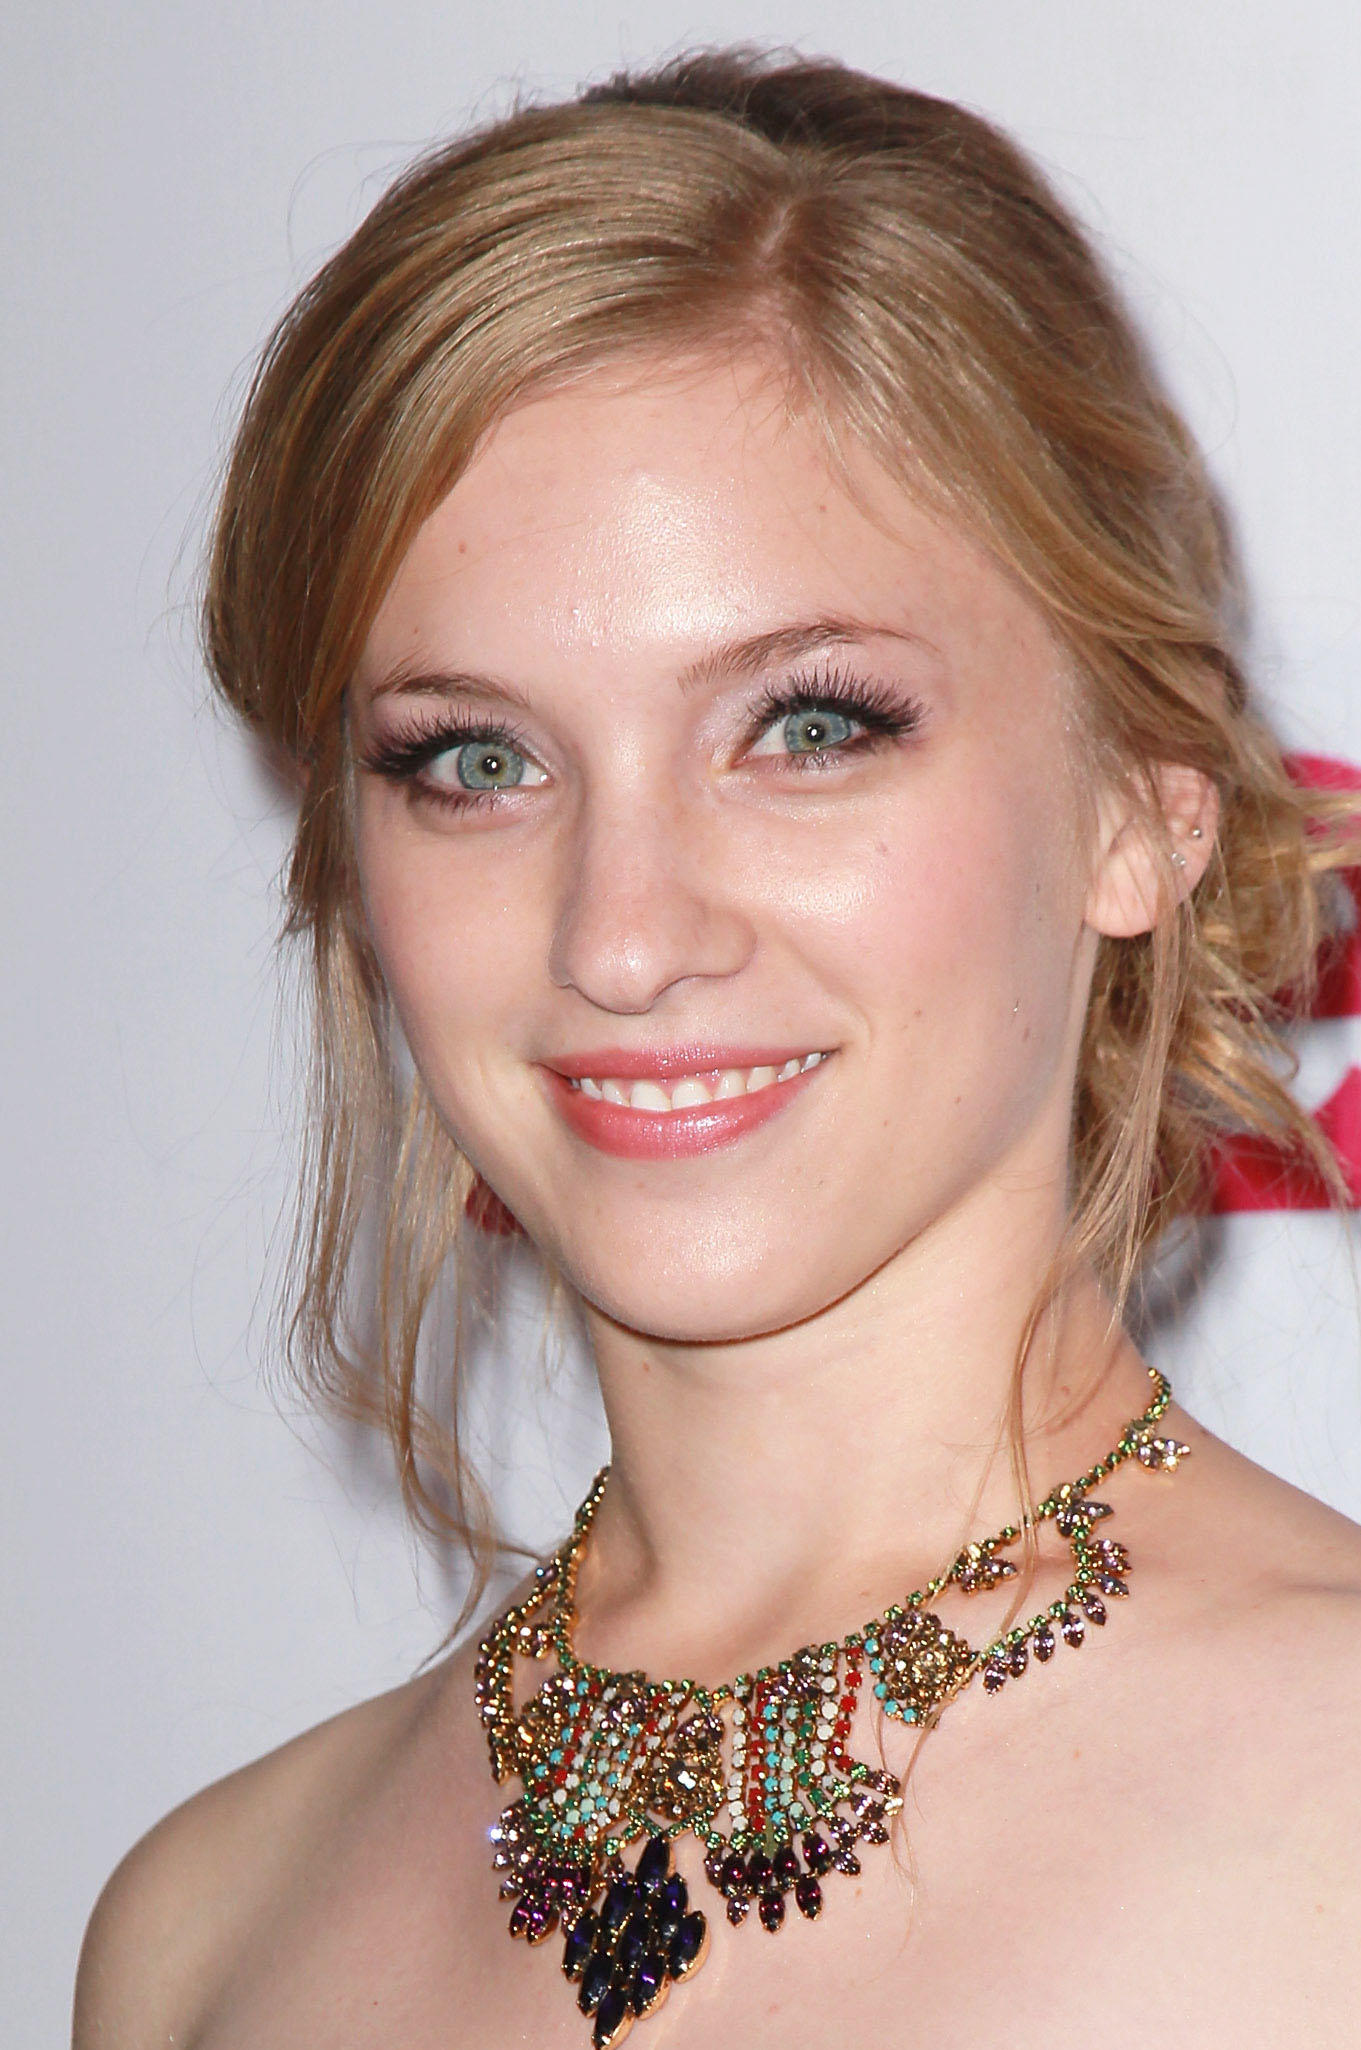 Amanda Bauer at the 9th annual Teen Vogue's Young Hollywood party in Los Angeles.